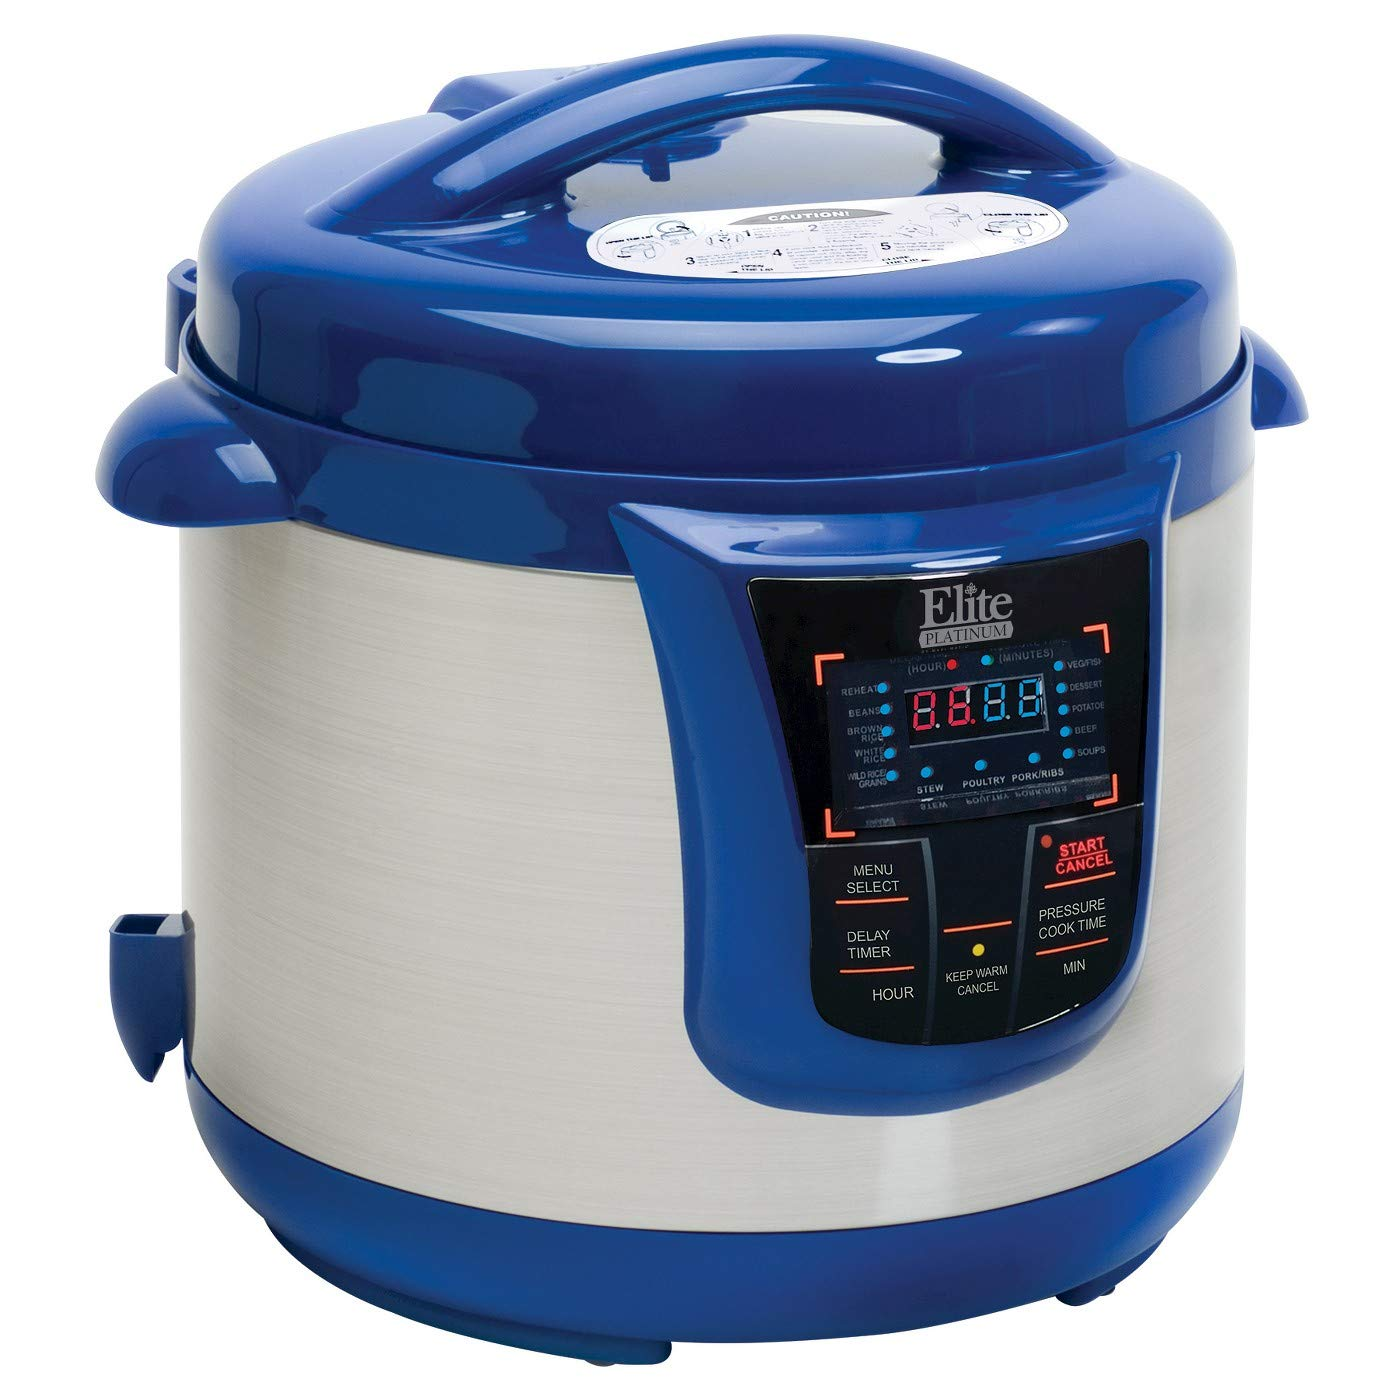 Elite Platinum 8 Quart 14-in-1 Multi-Use Programmable Pressure Cooker, Slow Cooker, Browning, Rice Cooker, Sauté, and Warmer with a 24-hour Delay Timer (Blue)